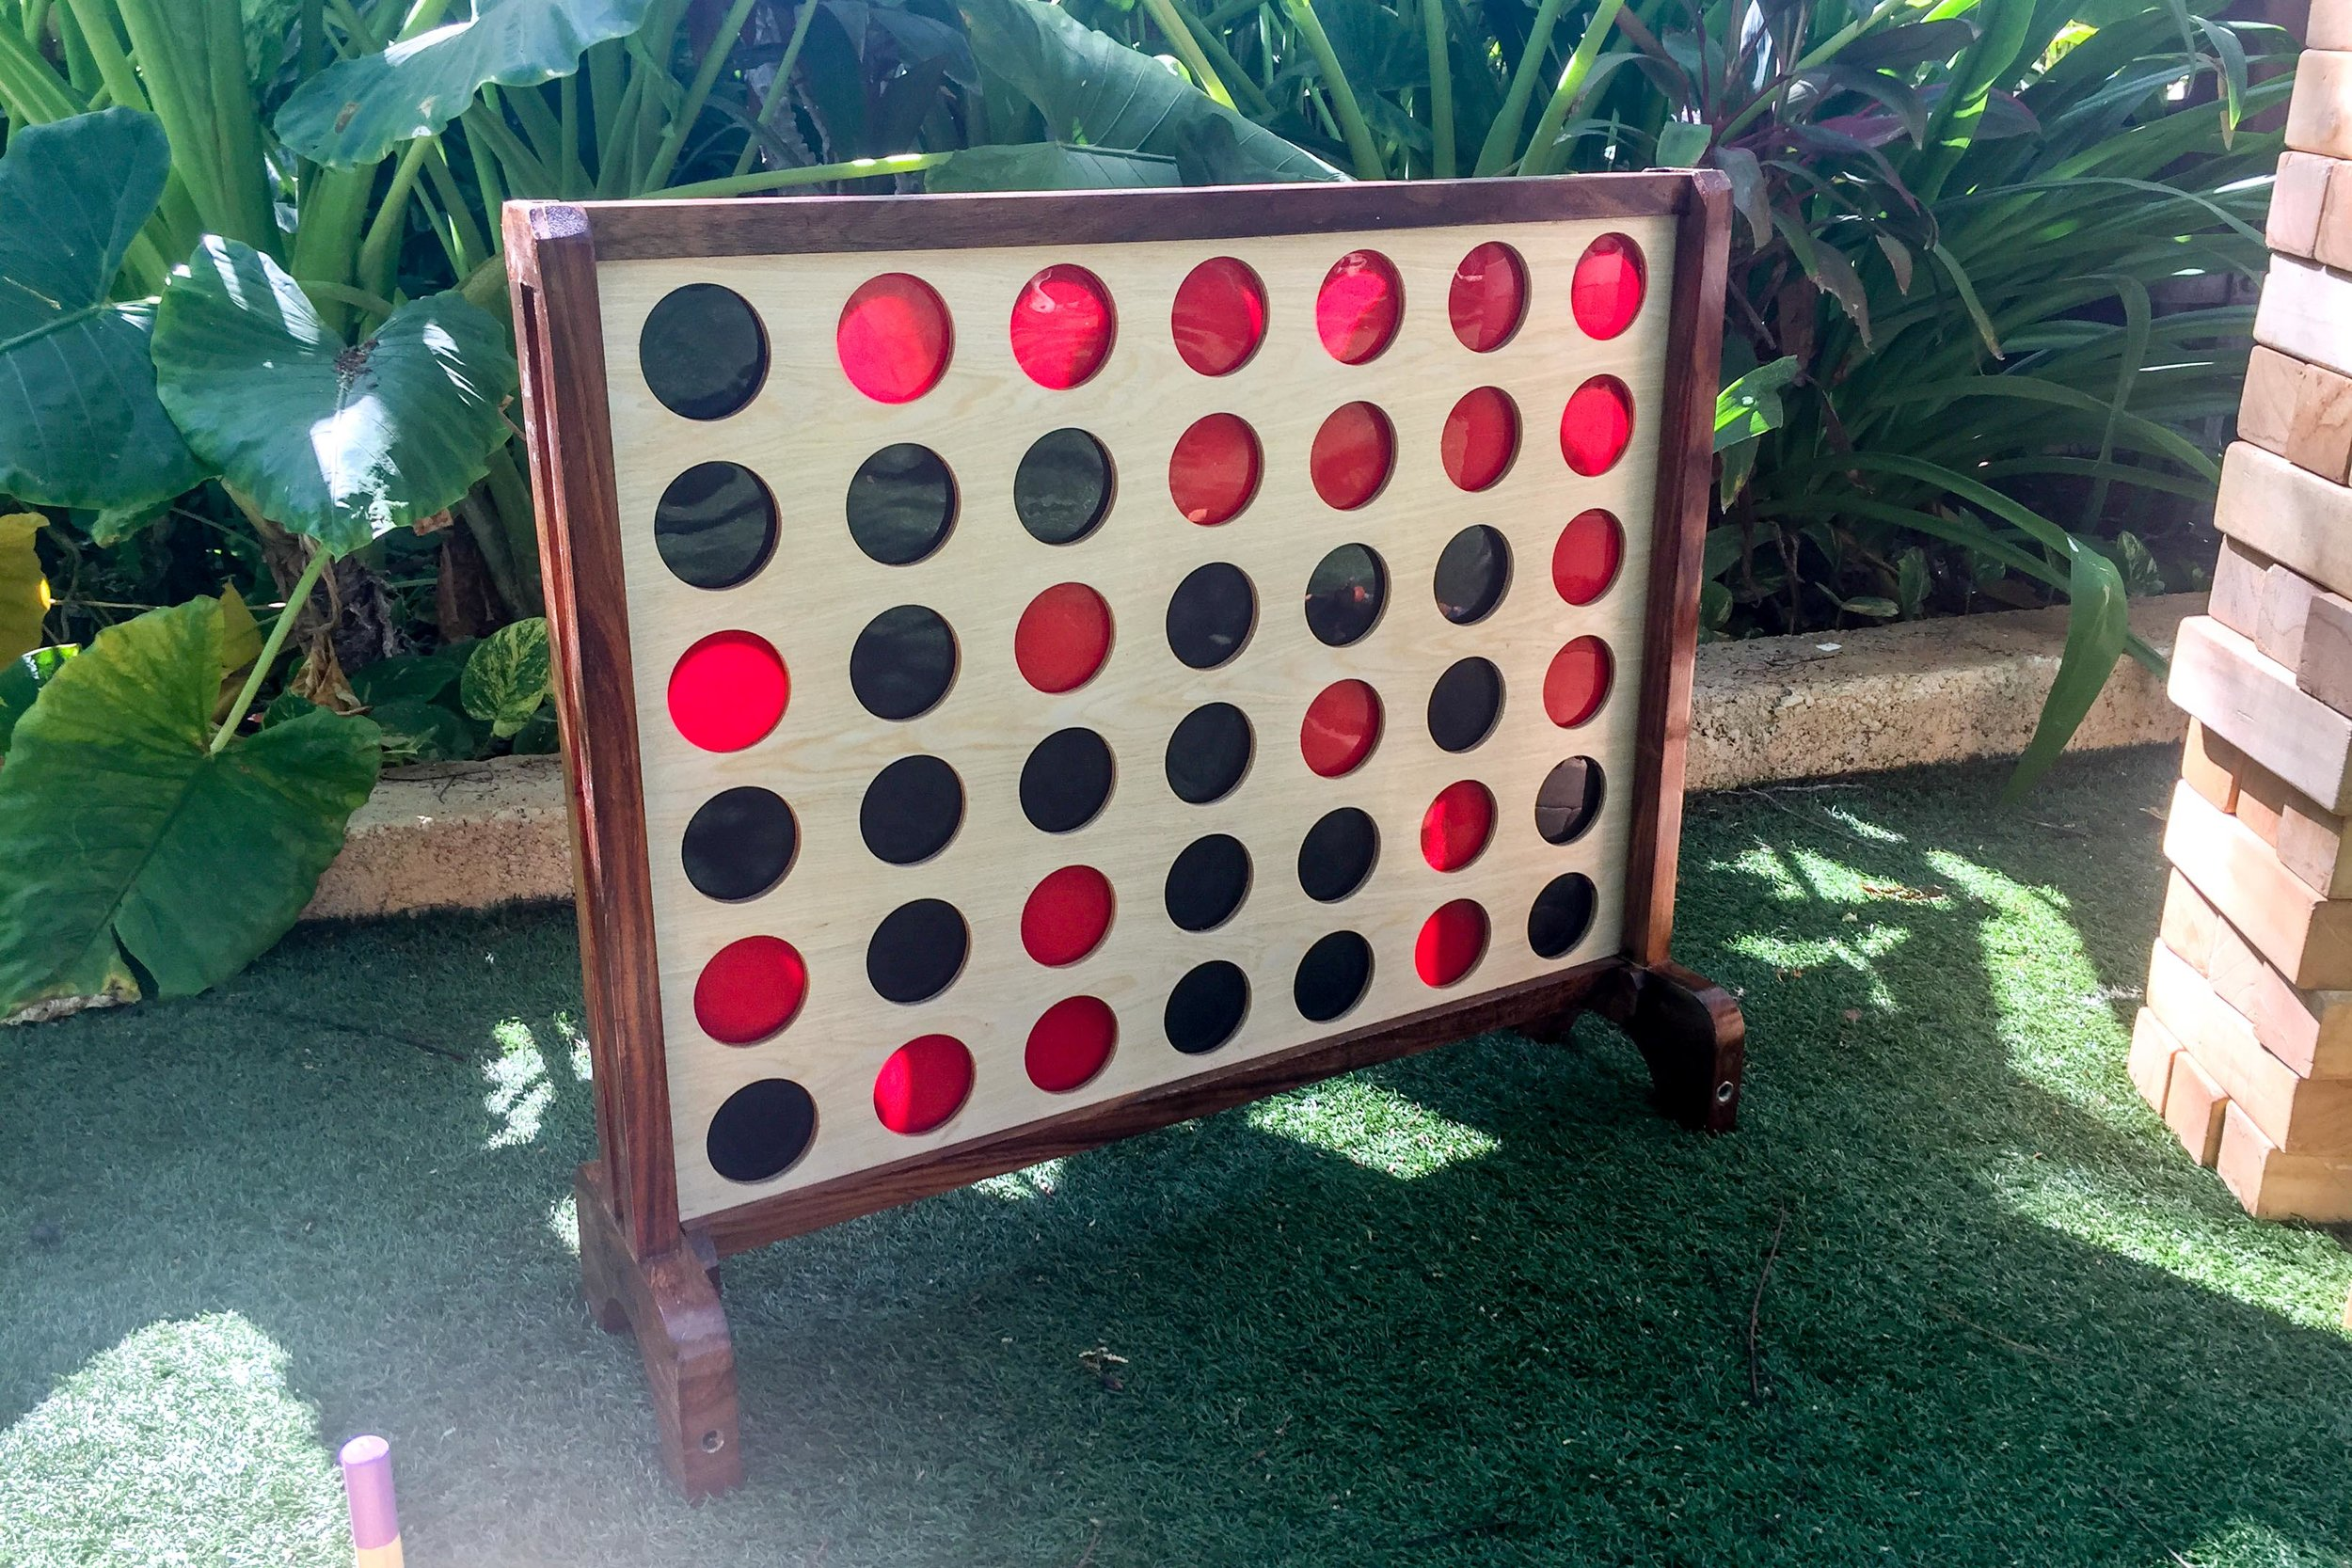 Giant Connect Four: $50 -